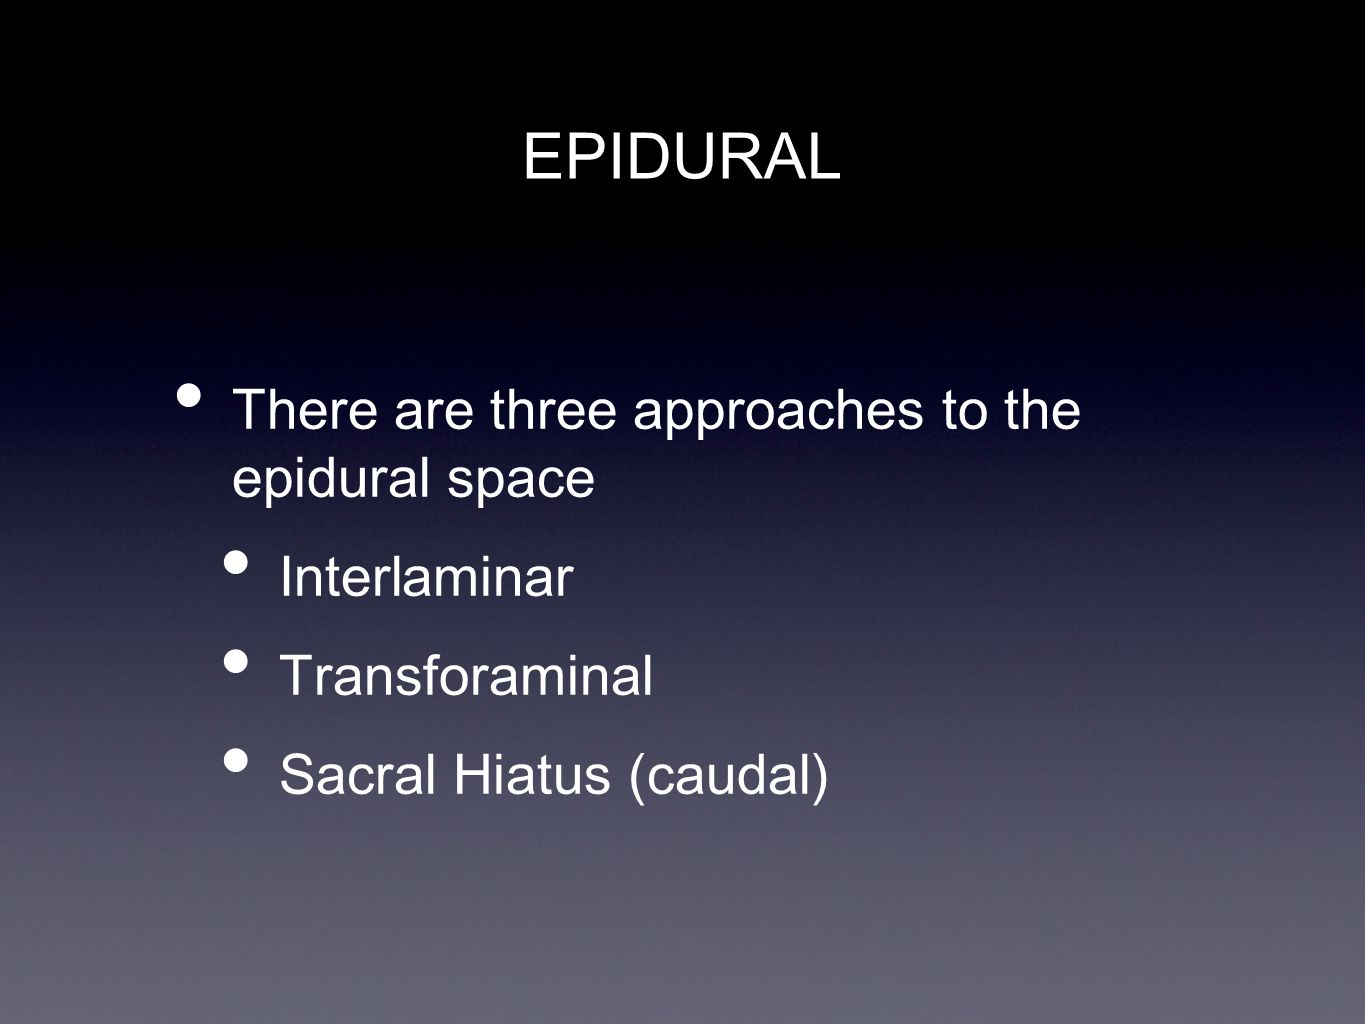 EPIDURAL There are three approaches to the epidural space Interlaminar